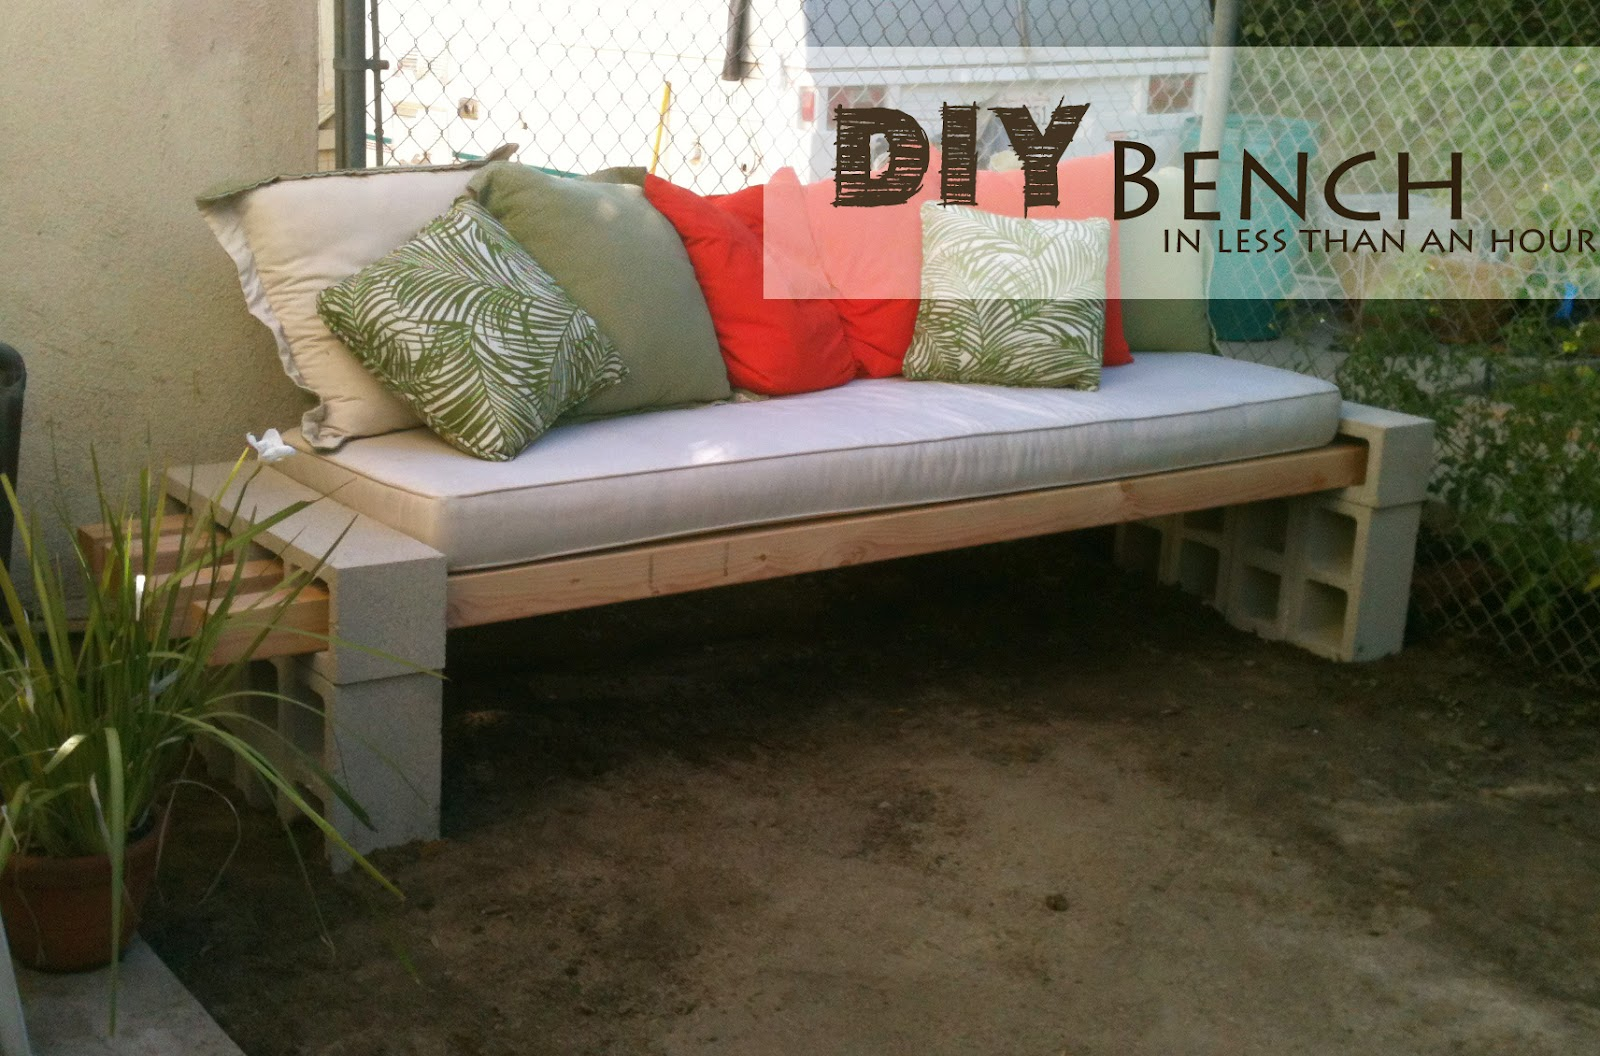 Do It Yourself Patio Chair Cushions Smartseat Protector Diy Outdoor Bench In Less Than An Hour The Basement